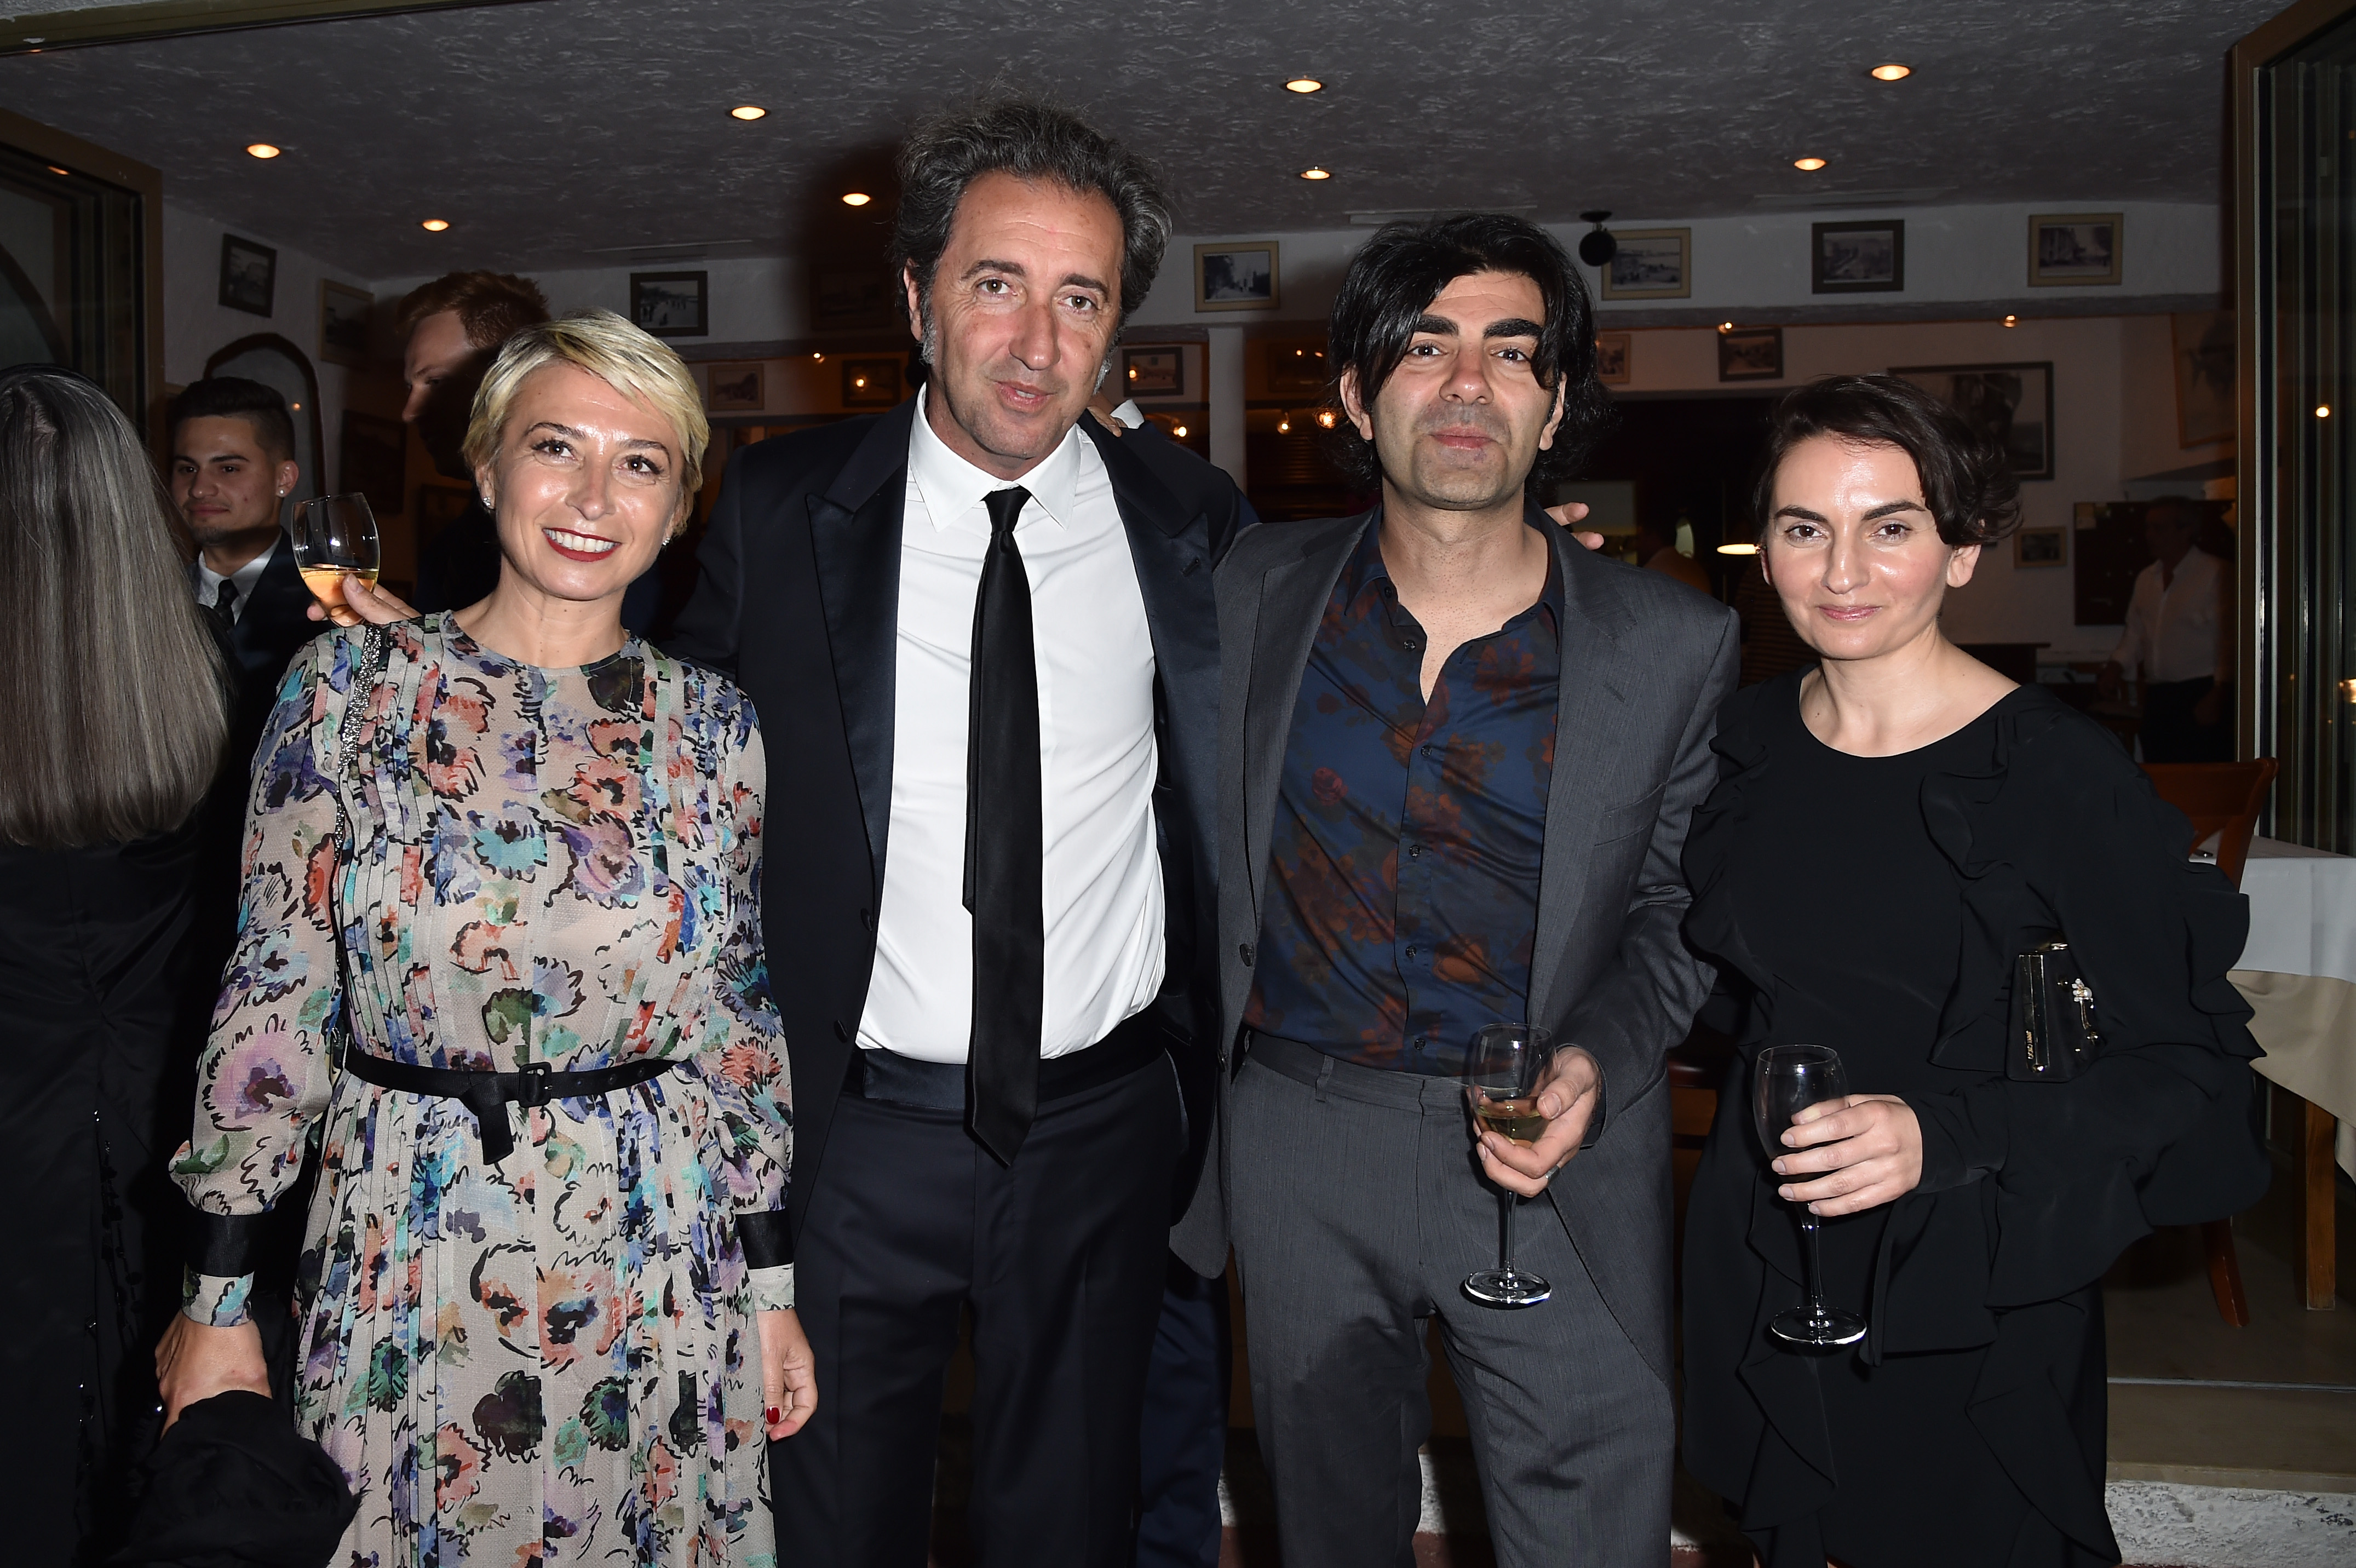 CANNES, FRANCE - MAY 22:  Daniela D'Antonio, Paolo Sorrentino, Faith Aktin and Christina Bazdekis  attend Prada Private Dinner during the 70th annual Cannes Film Festival at Restaurant Fred L'Ecailler on May 22, 2017 in Cannes, France.  (Photo by Jacopo Raule/Getty Images for Prada)